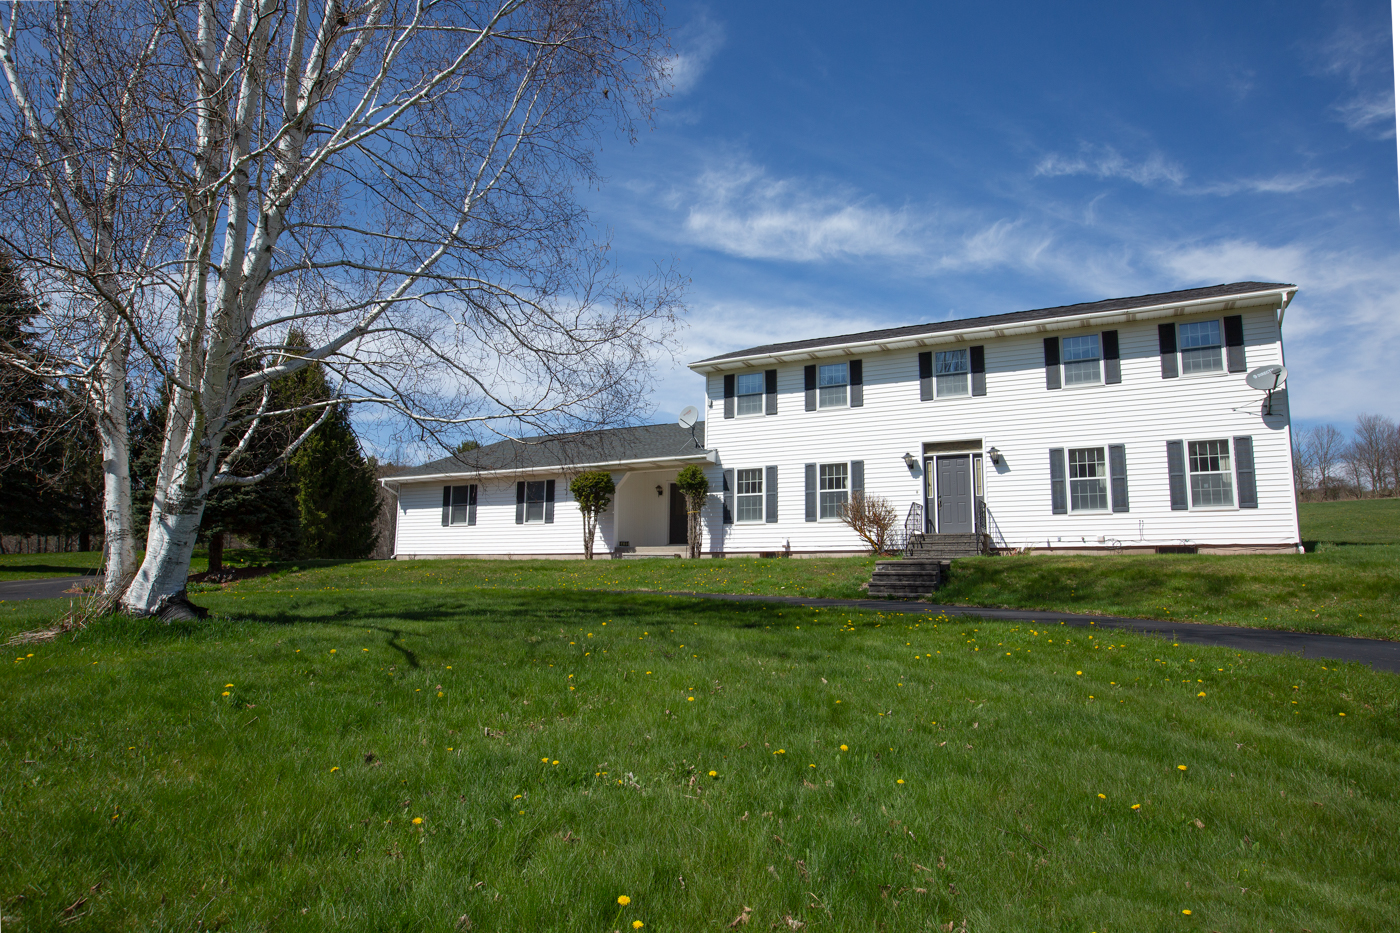 Single Family Homes for Active at 6405 S State Highway 28, Oneonta, NY 13820 6405 S State Highway 28 Oneonta, New York 13820 United States